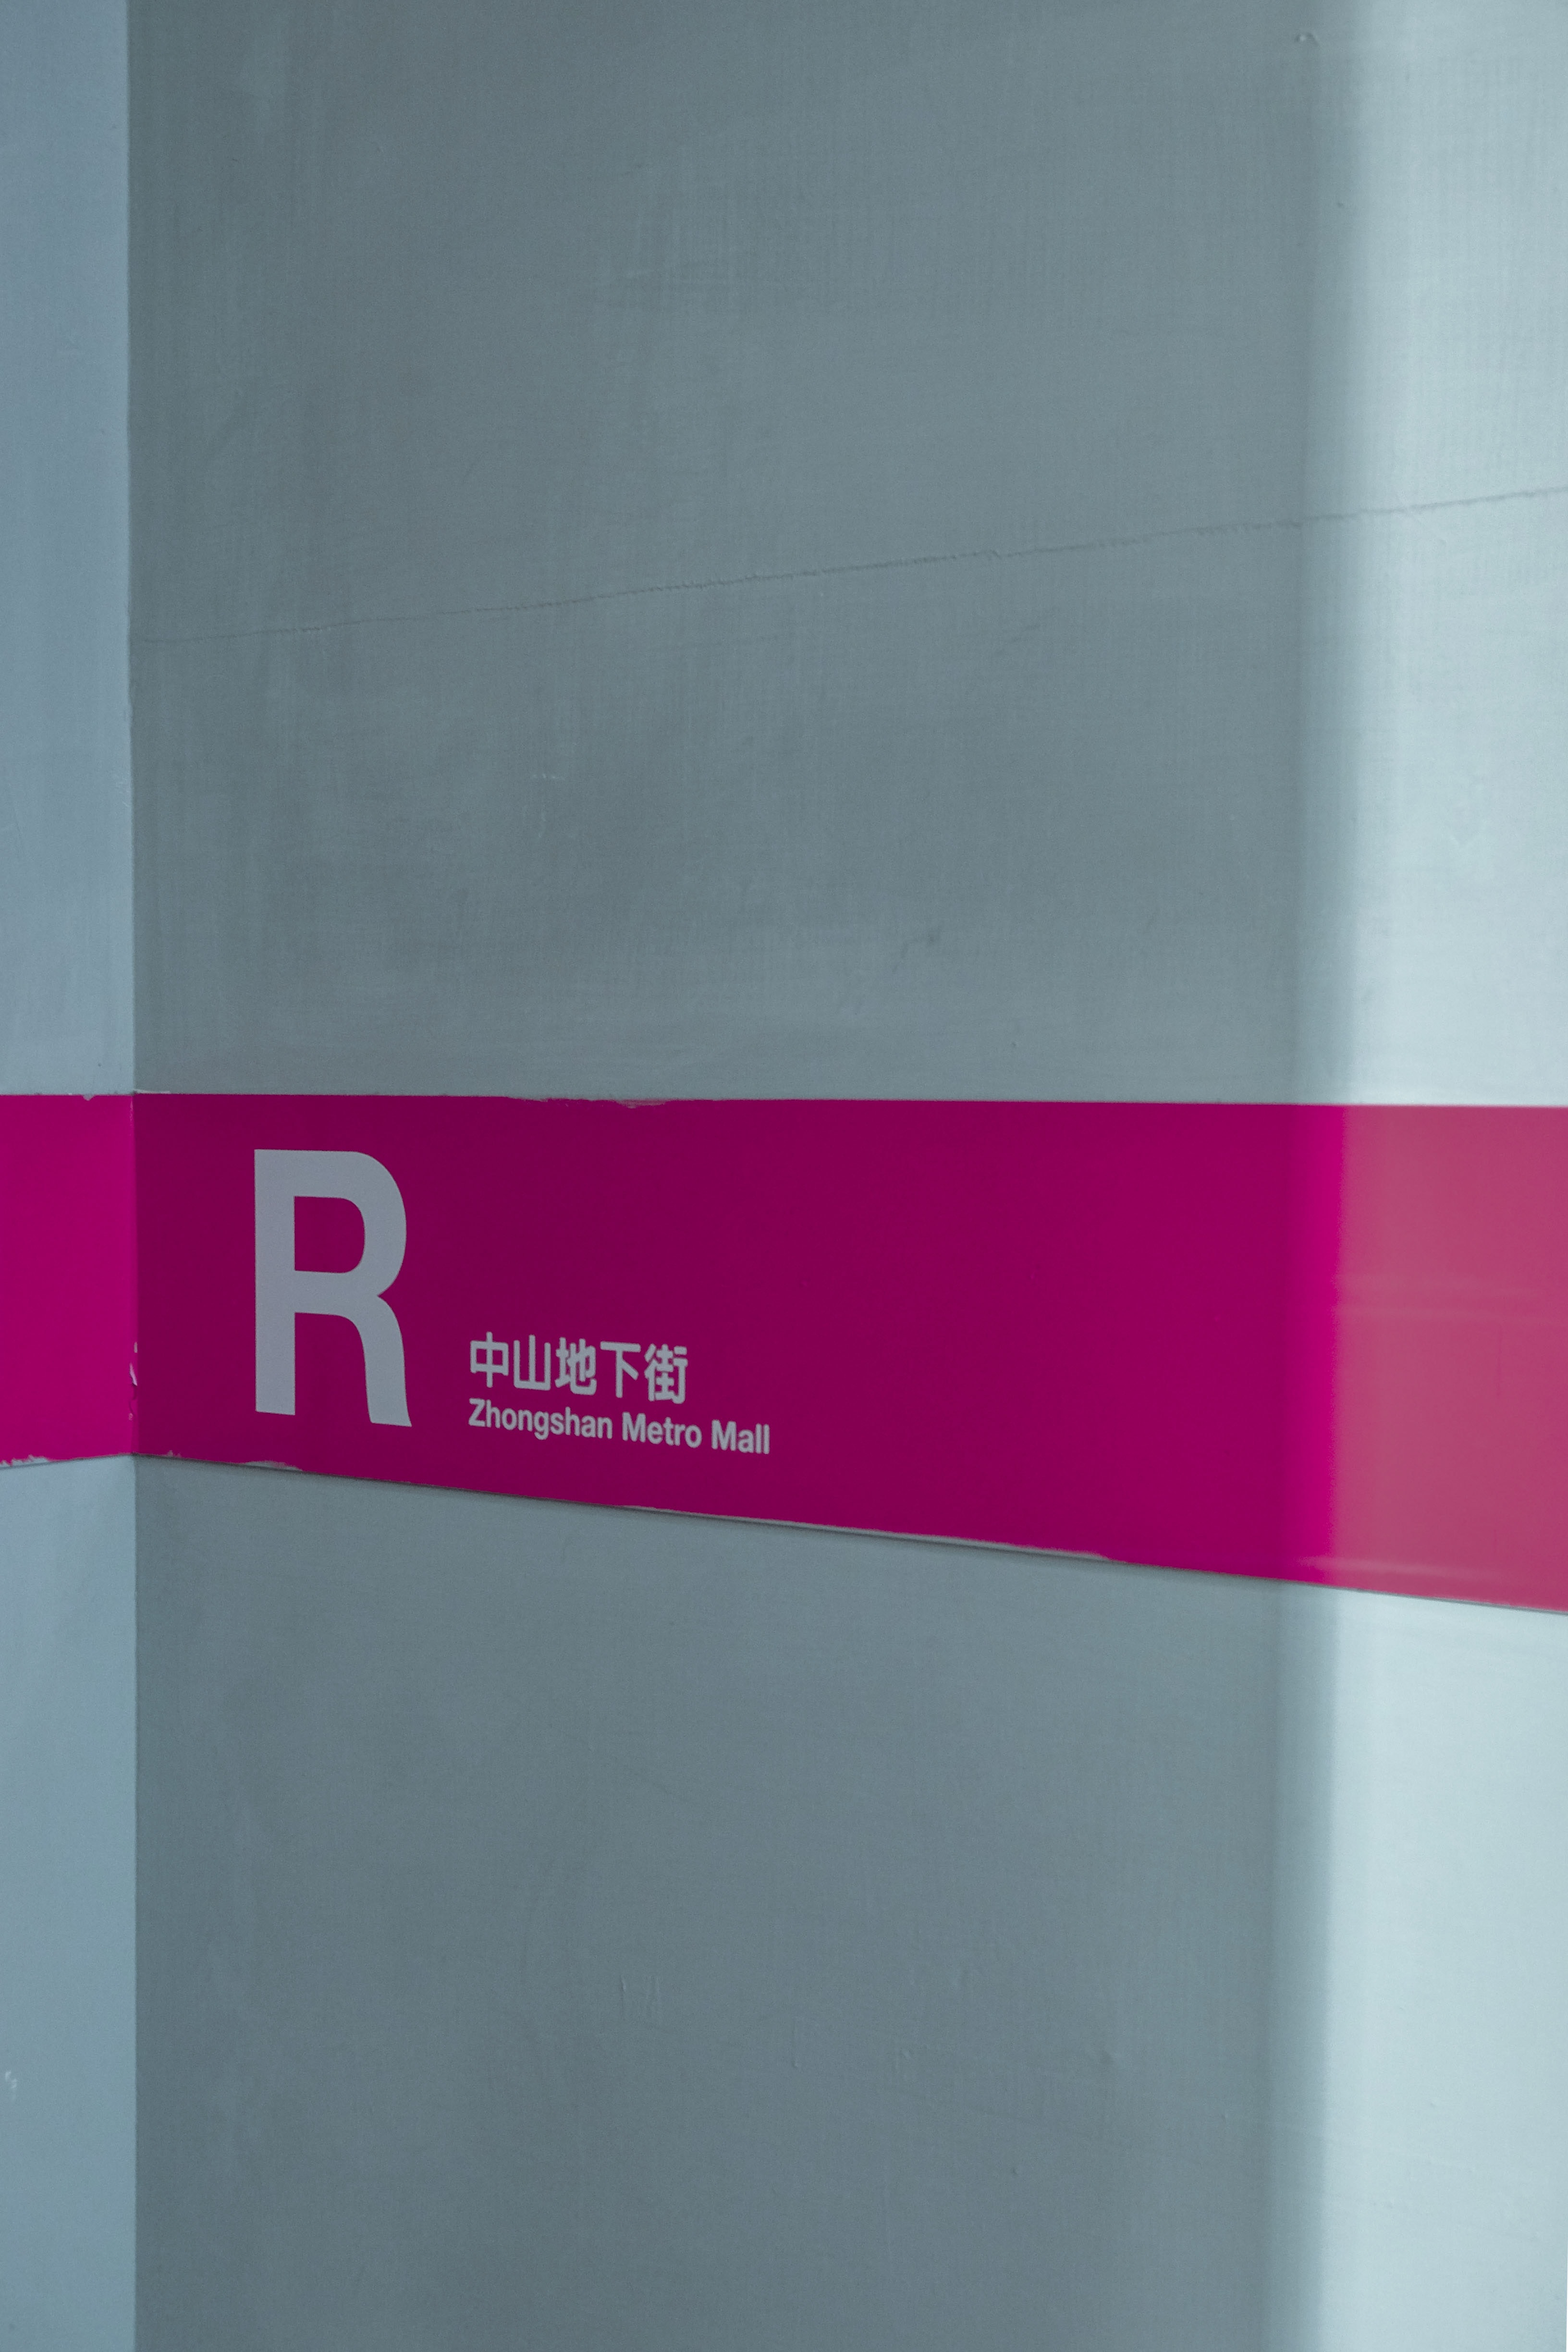 R labeled sticker on wall